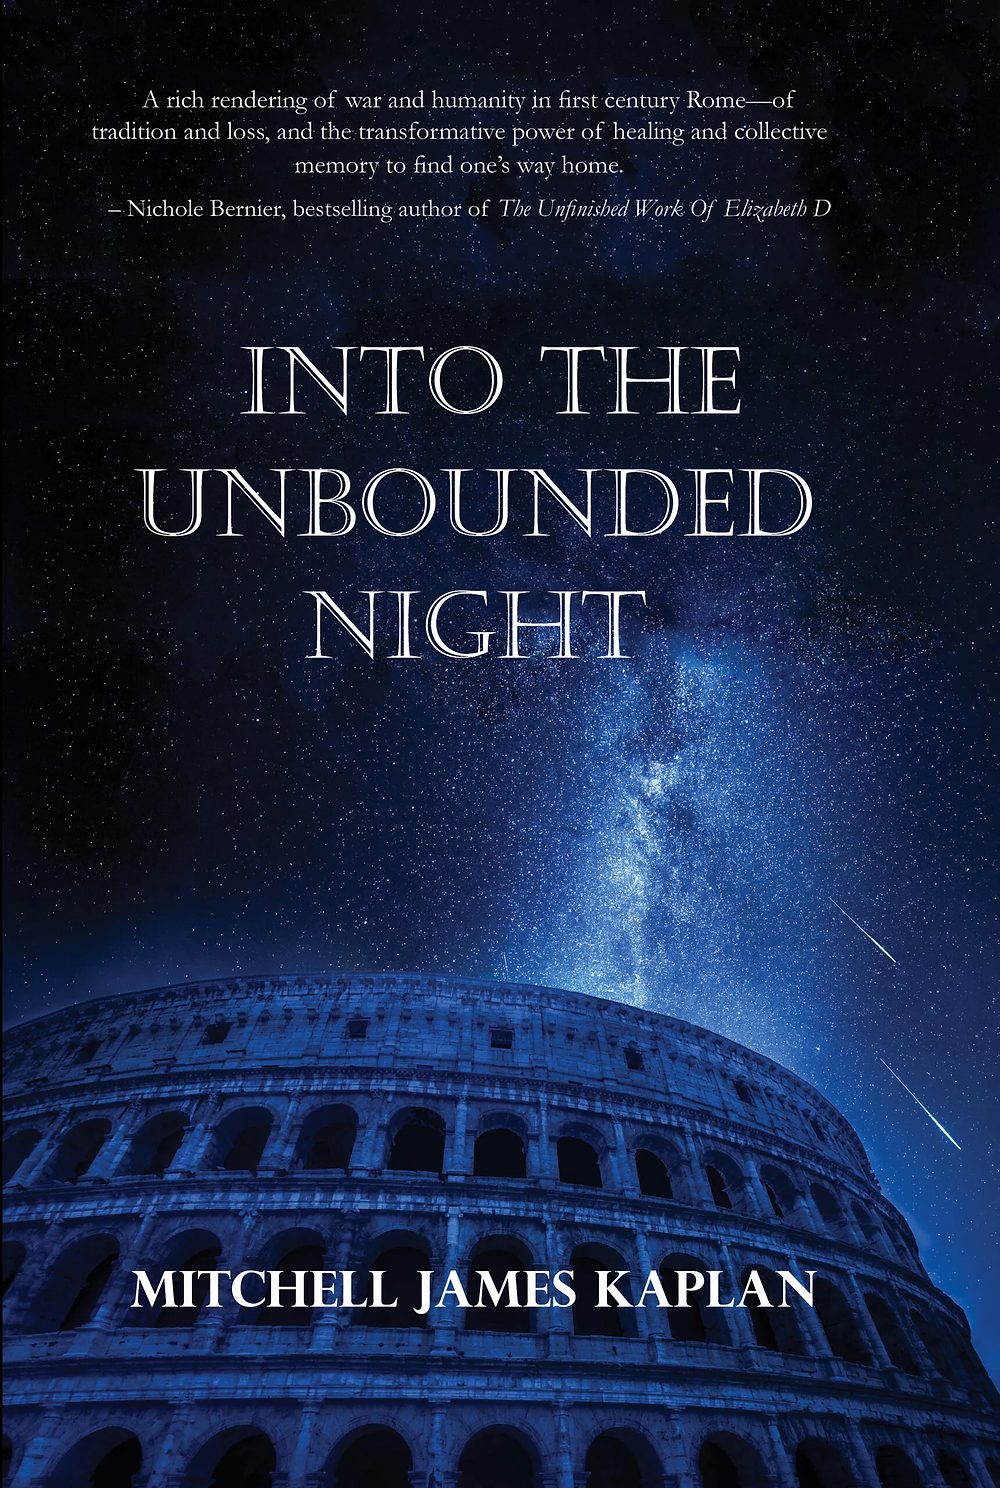 Into the Unbounded Night by Mitchell James Kaplan